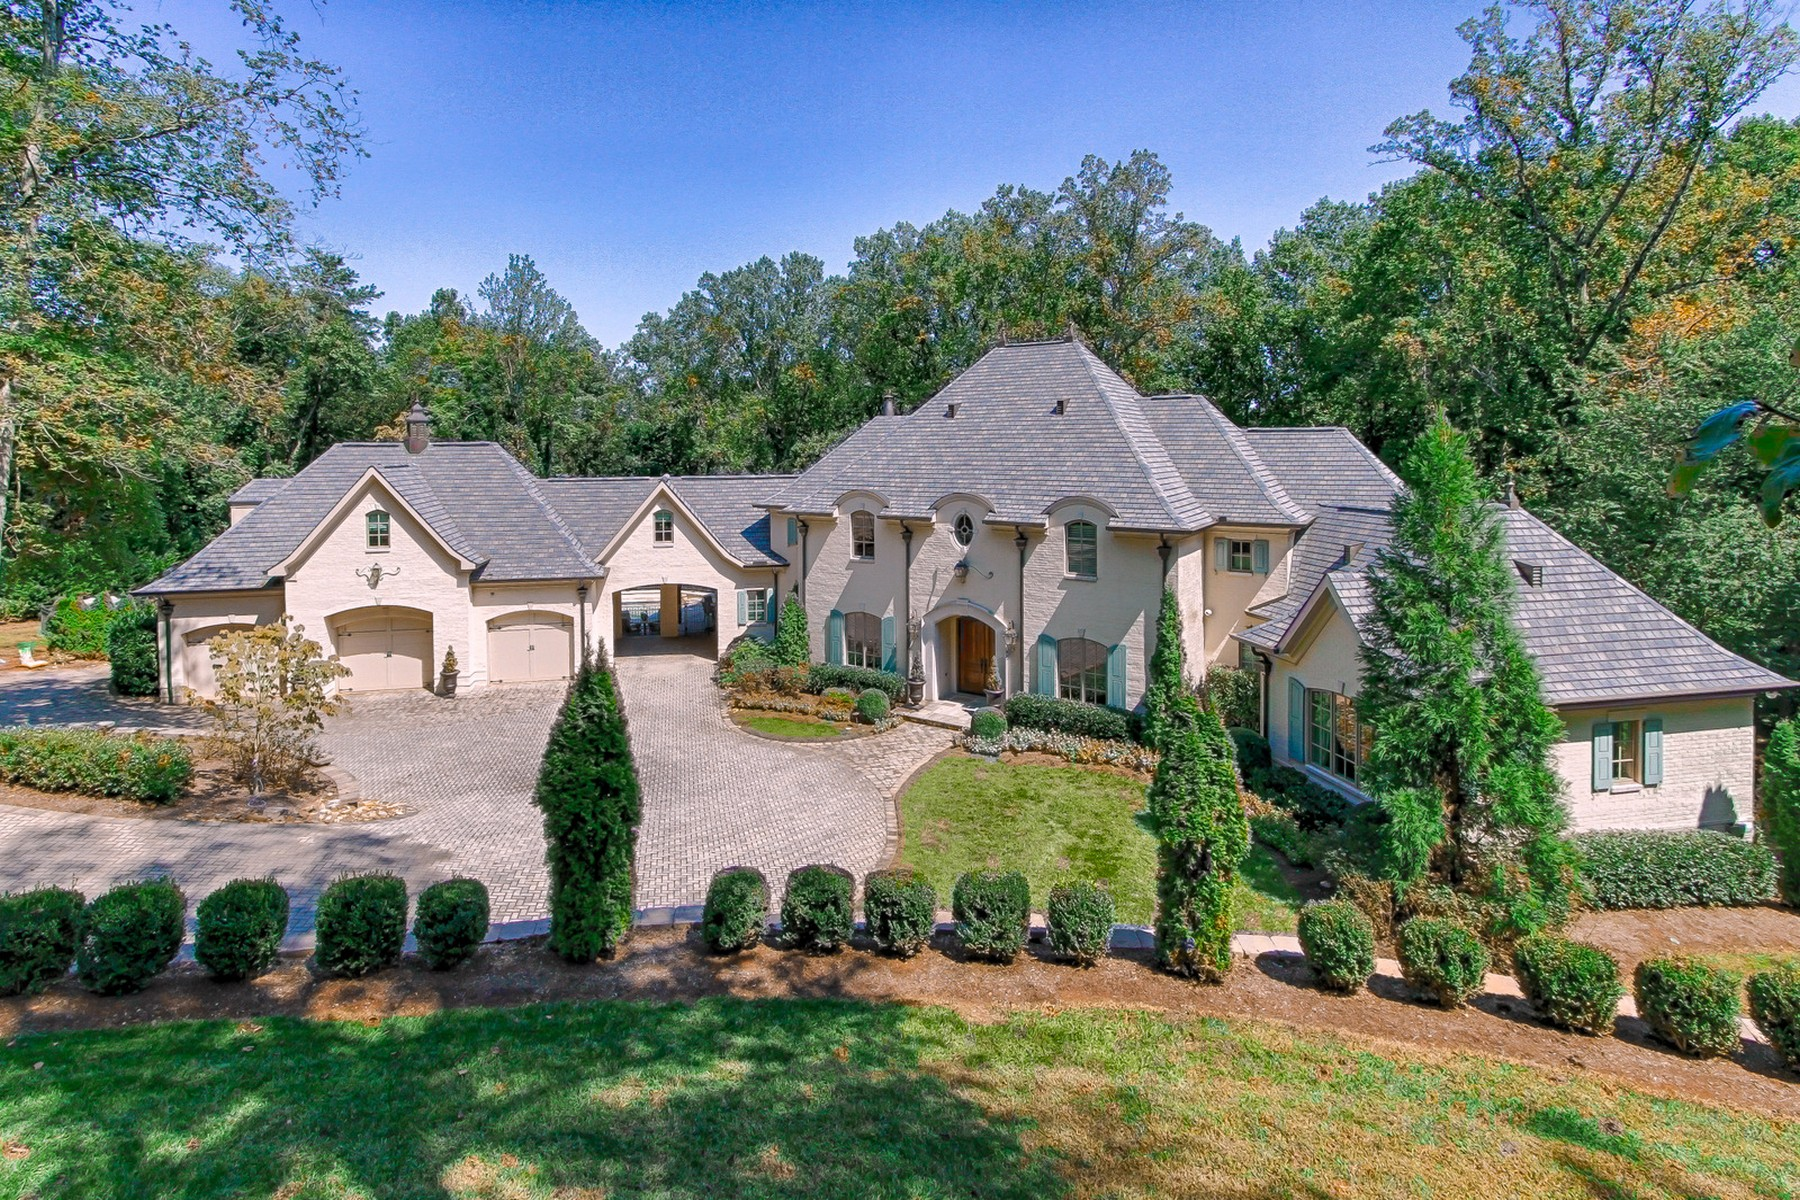 Single Family Home for Sale at Stunning French Country Manor 1462 Rudder Lane Knoxville, Tennessee 37919 United States